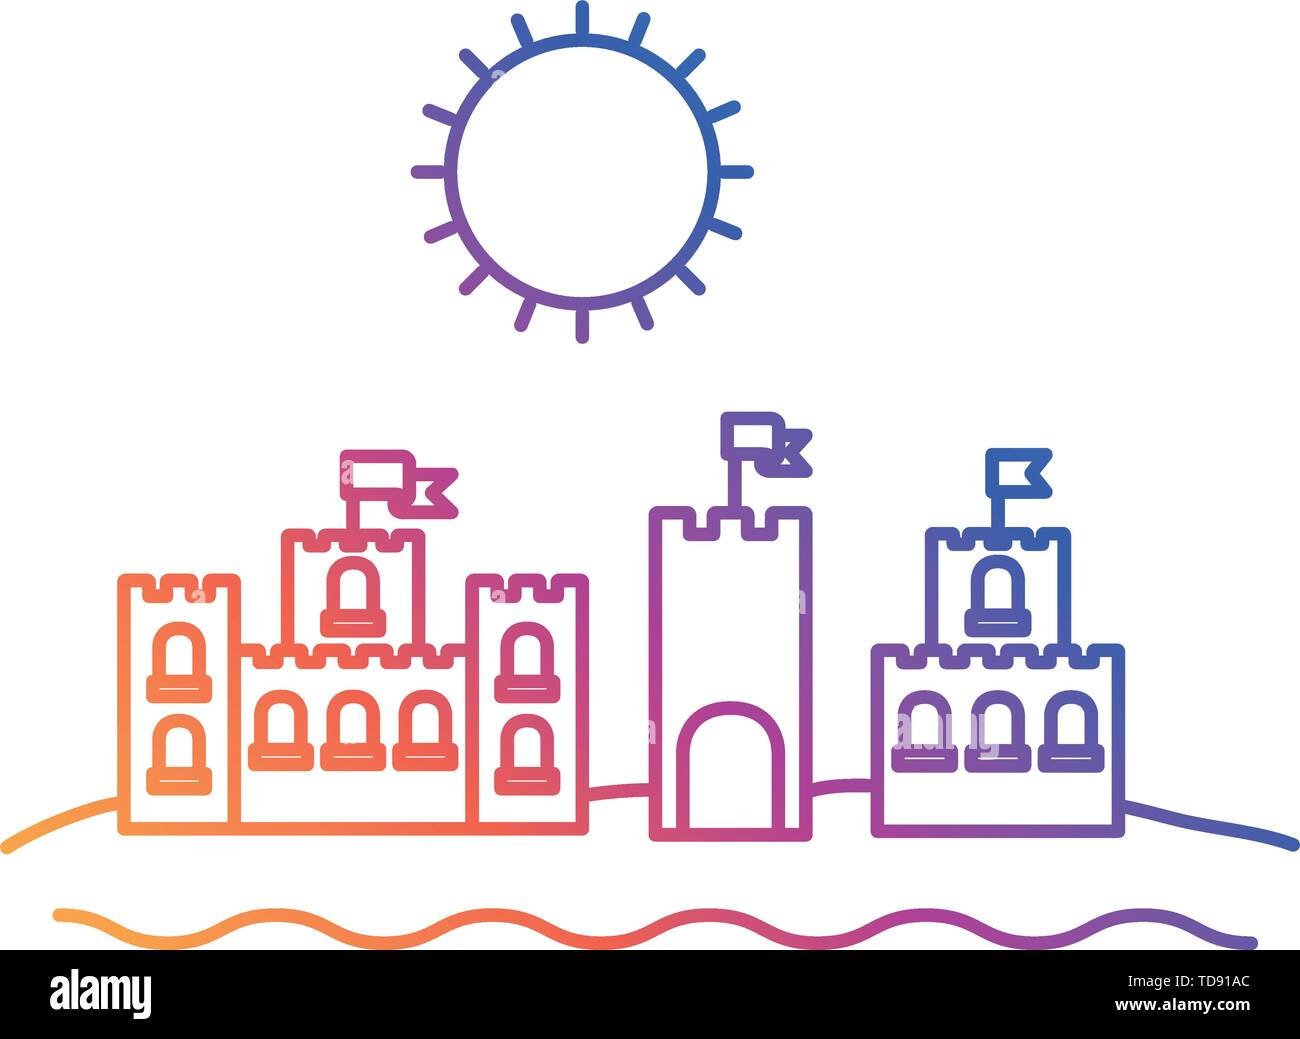 silhouette of sand castle on white background - Stock Image